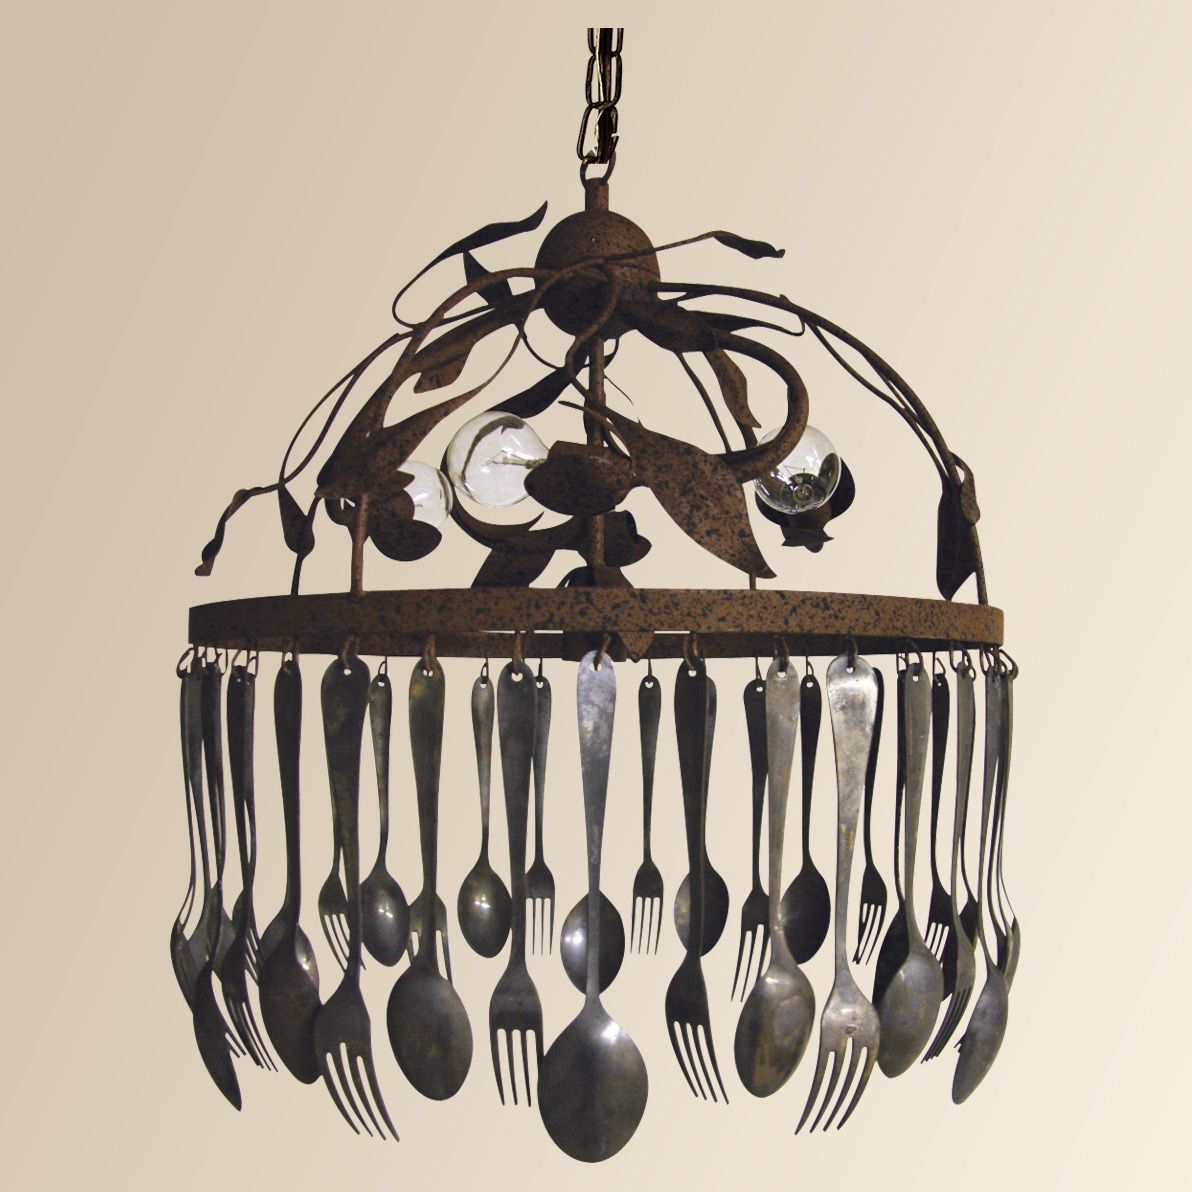 Spoon and fork chandelier Chandelier, Unique chandeliers